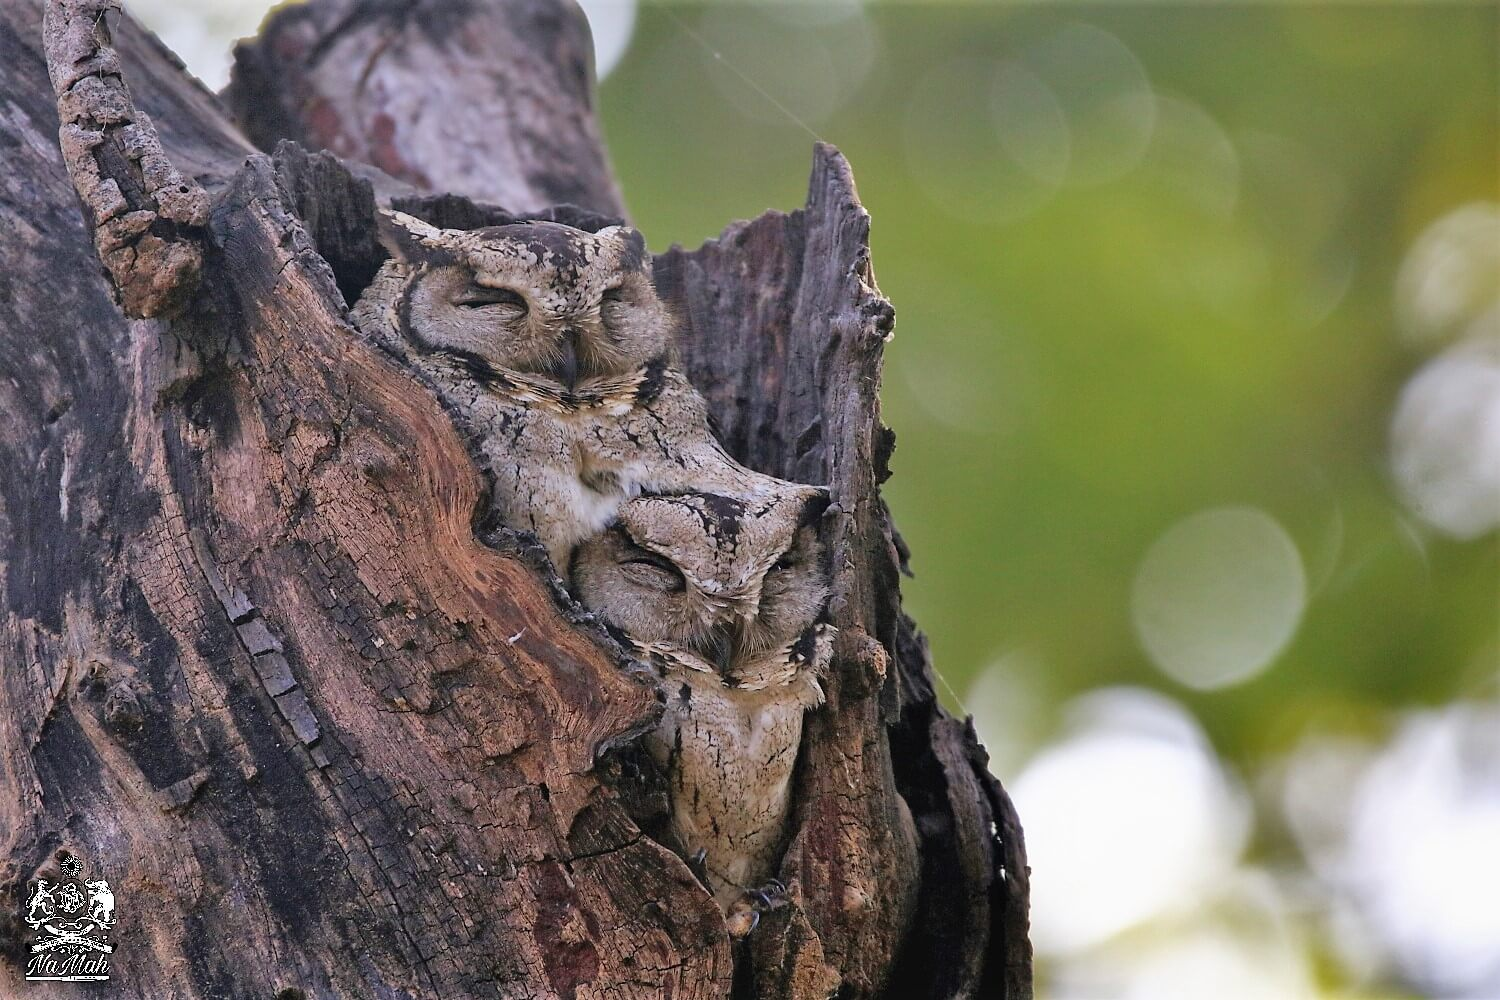 Scoops Owls resting in hole of tree photographed at Kanha National Park